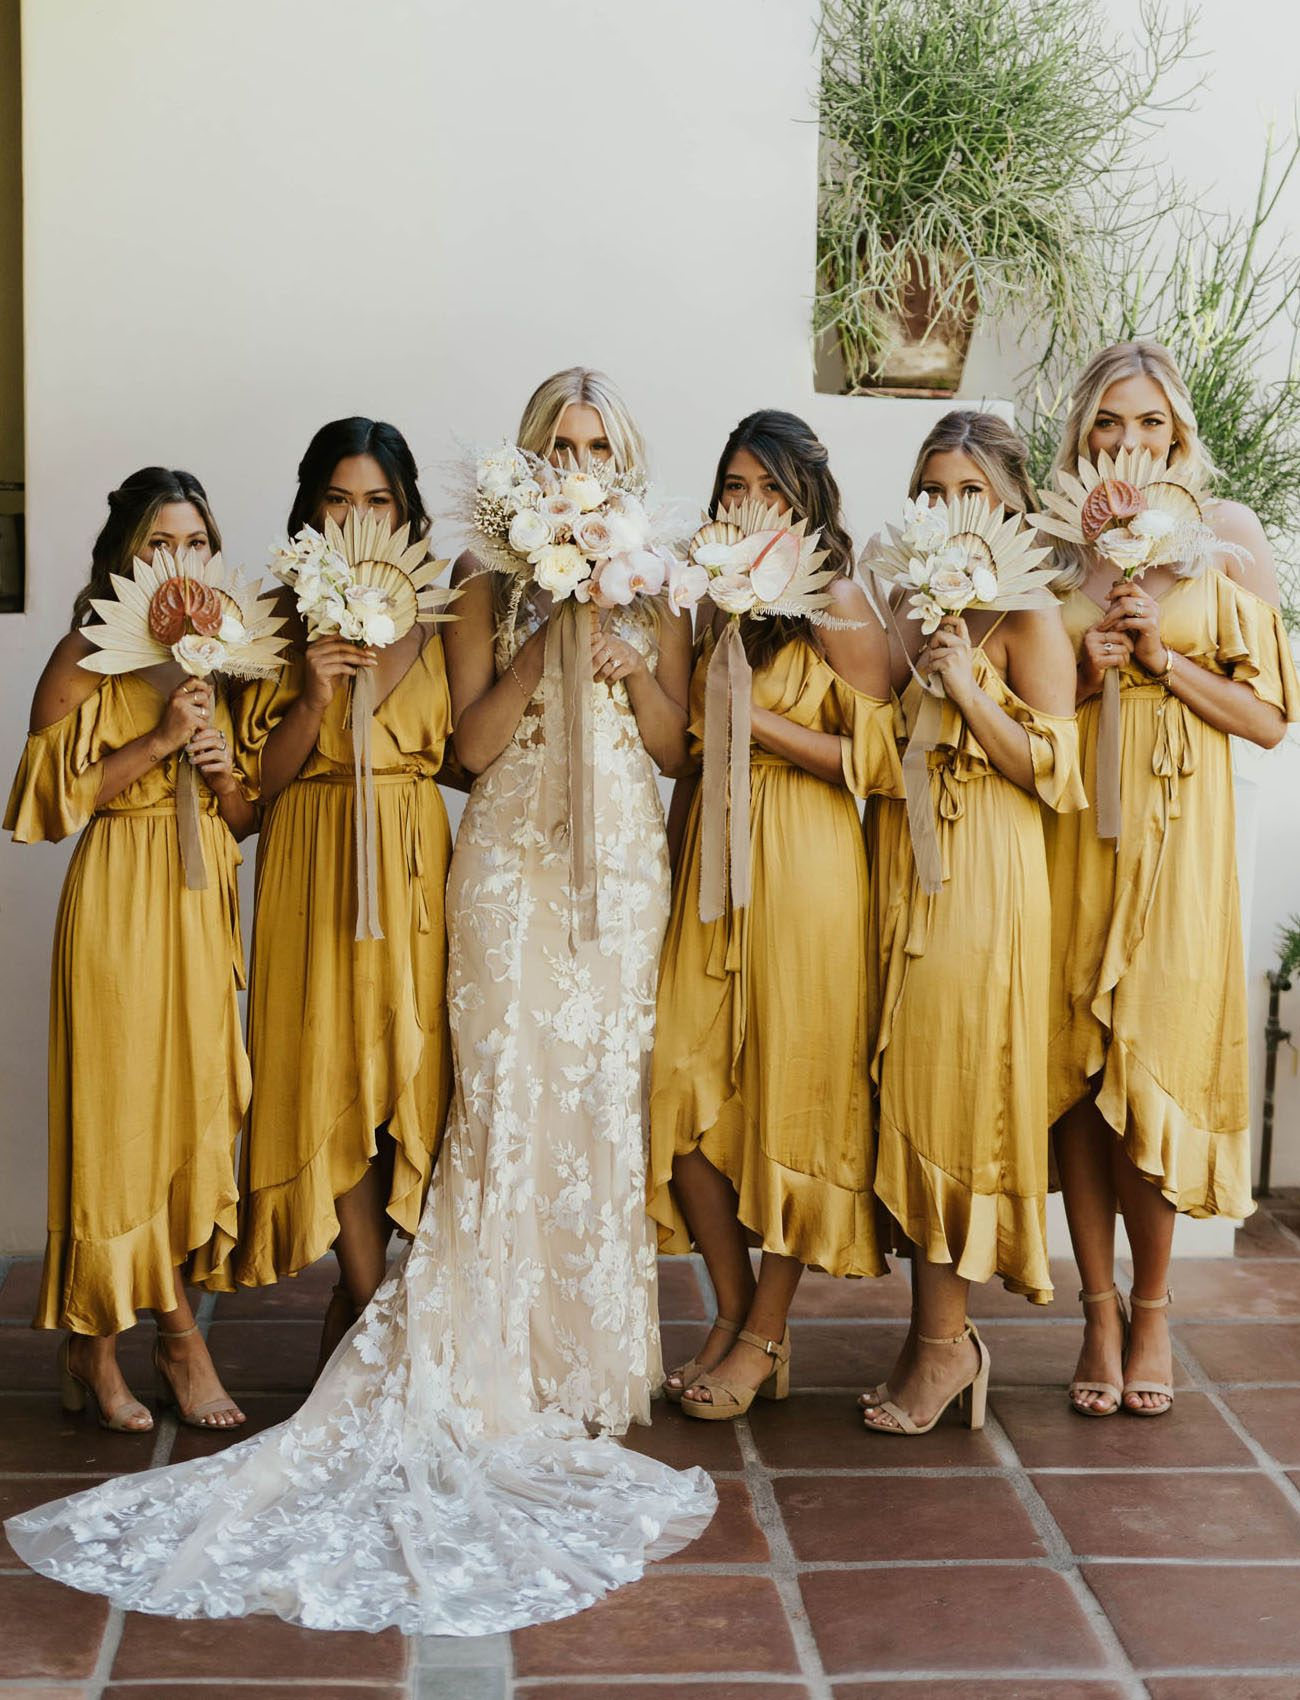 This Desert Meets Tropical Wedding In Palm Springs Brings The Mustard Yellow Hues Green Wedding Shoes Bridesmaid Dresses Boho Yellow Bridesmaid Dresses Yellow Bridesmaids [ 1700 x 1300 Pixel ]